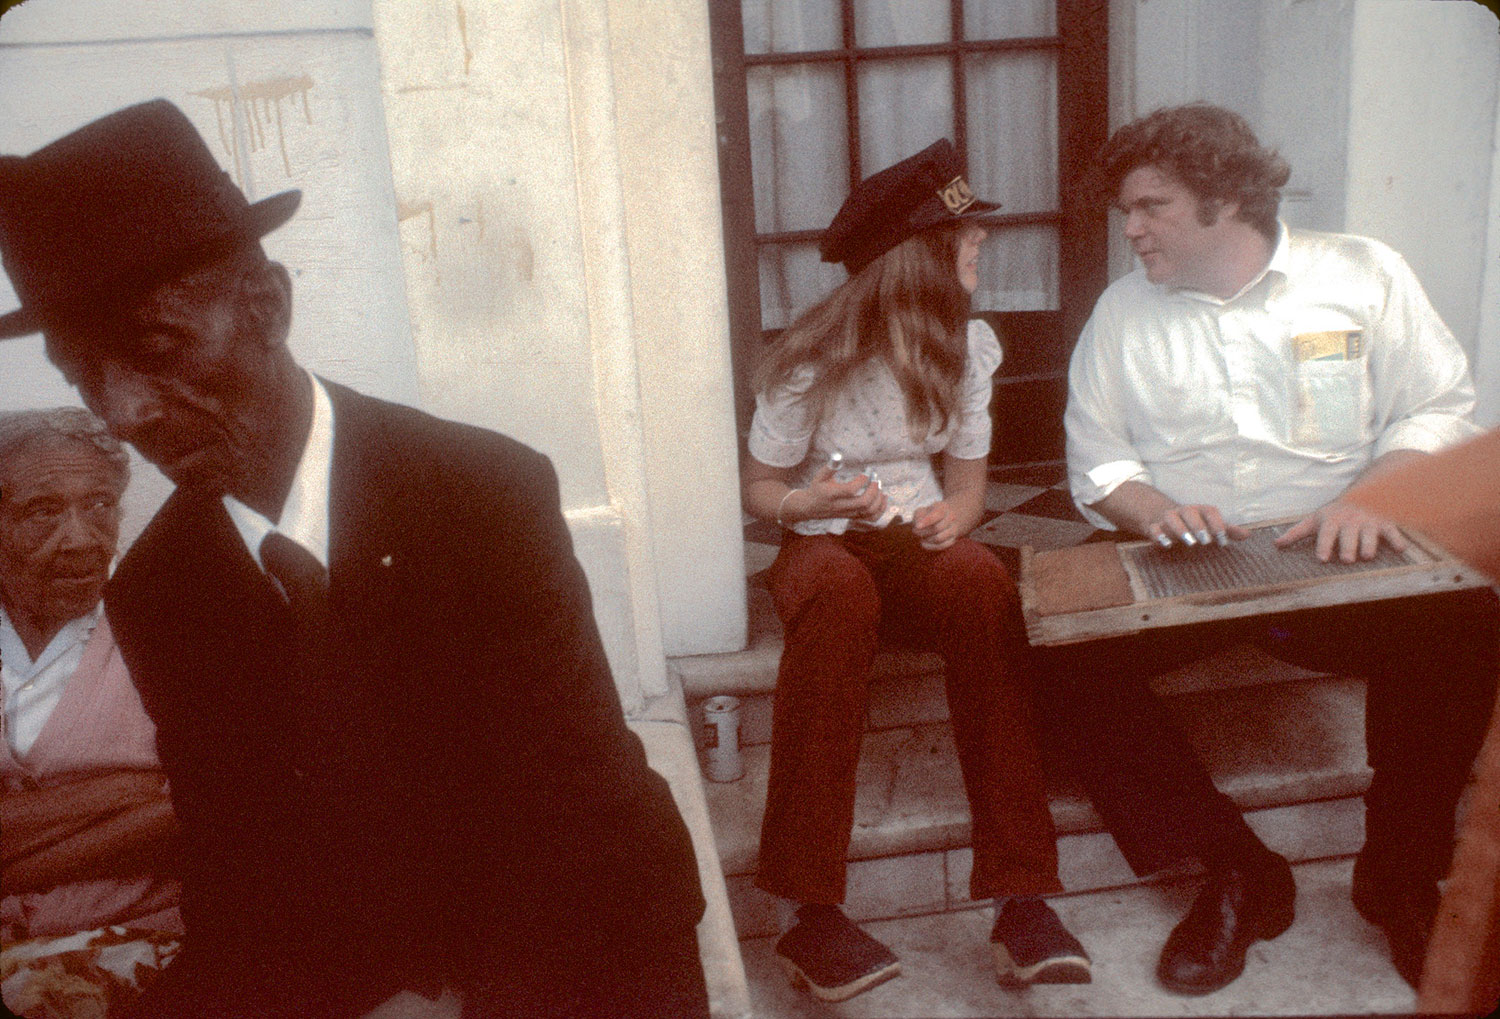 Serenading a friend of the musicians, Miss Carrie, at her home typified the informality of French Quarter musical culture. Left to right: Miss Carrie; bass drummer Booker T. Glass; student Jennifer Hamilton wearing band hat; washboard player Allan Jaffe. Photograph by William Carter, 1974